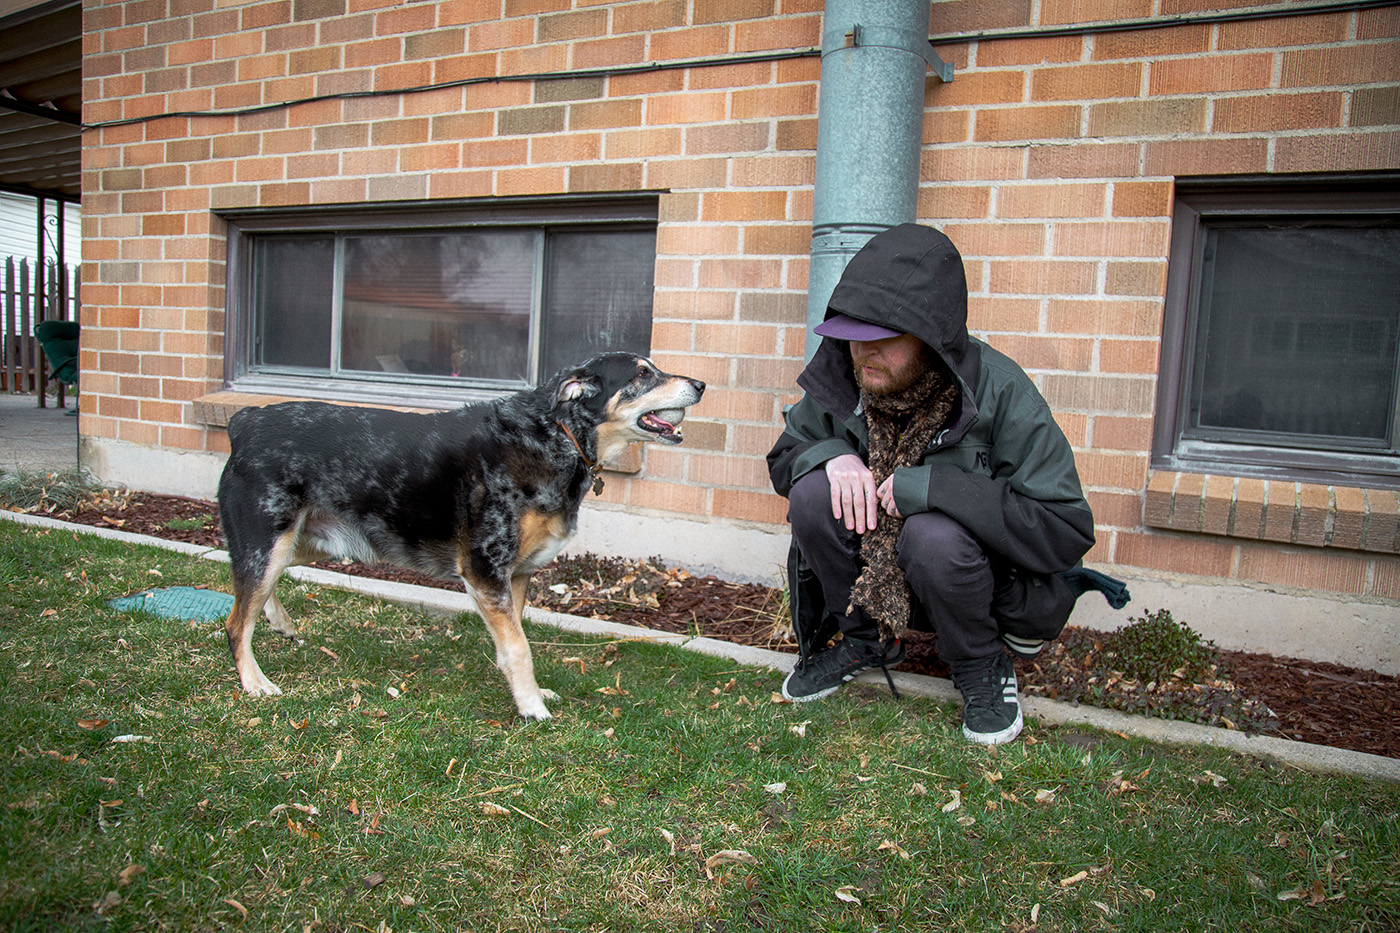 (L–R) Ender (dog) gets plenty of rubber-ball fetch time from his weird uncle, Mike Brown (human).